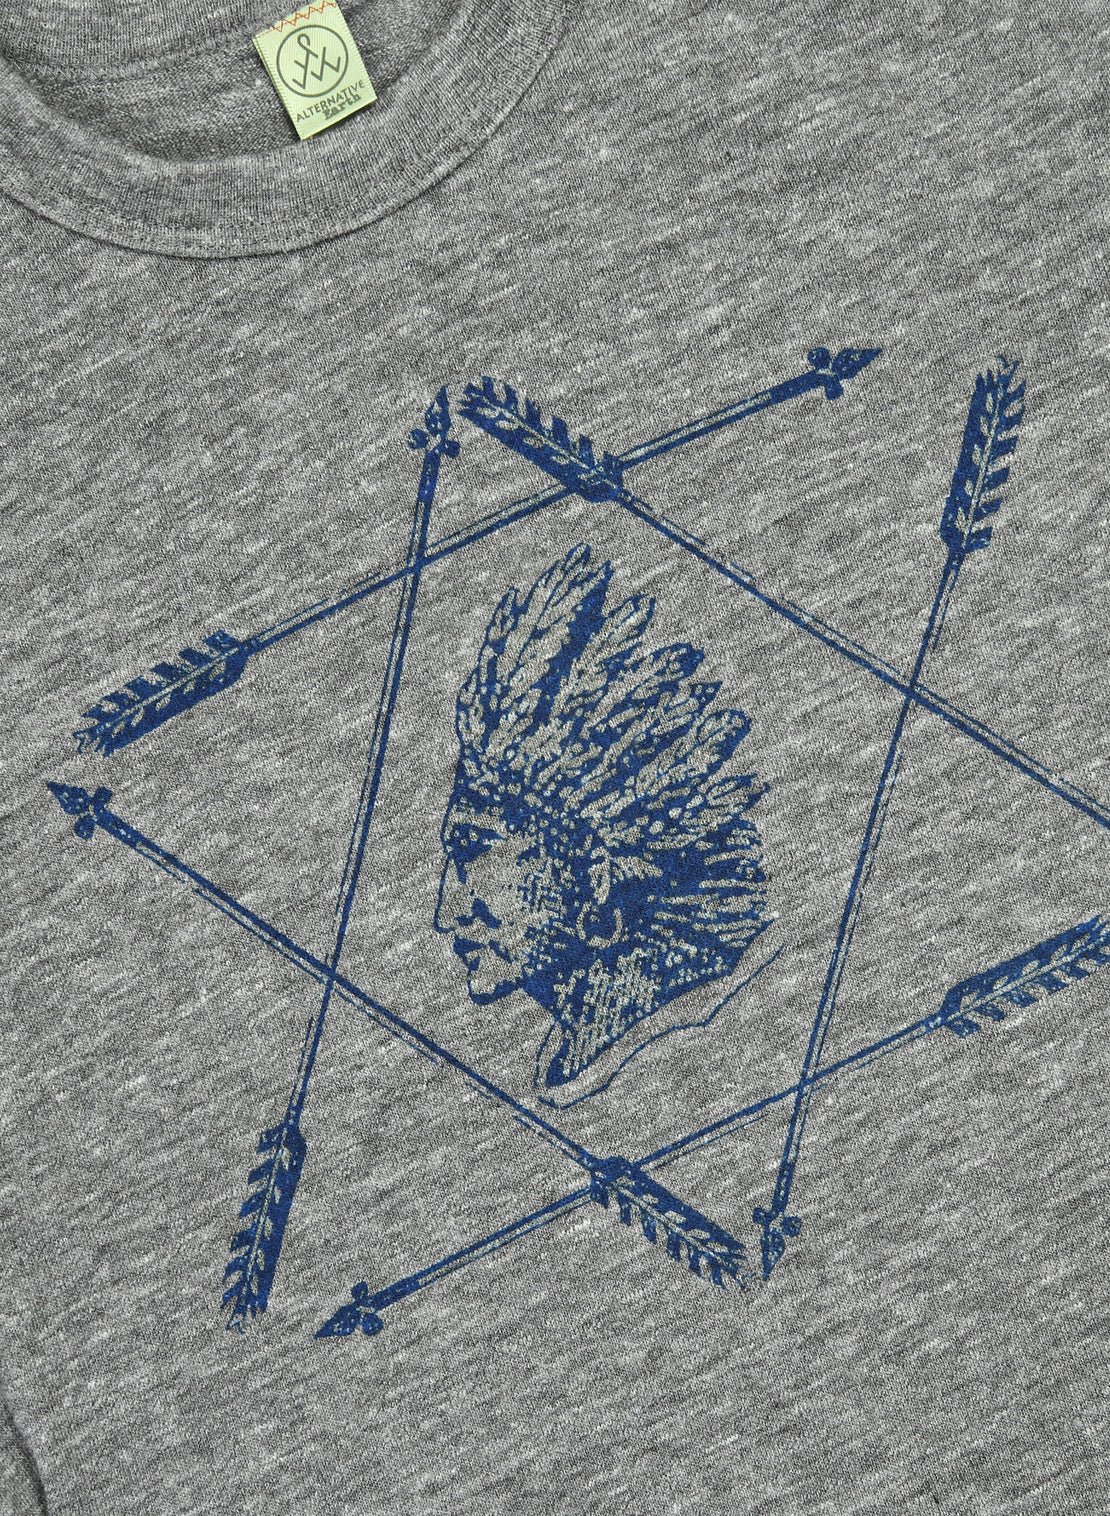 Grpahic Tee  - Indian Arrows - Alchemy Design - STAG Provisions - Tops - Graphic Tee